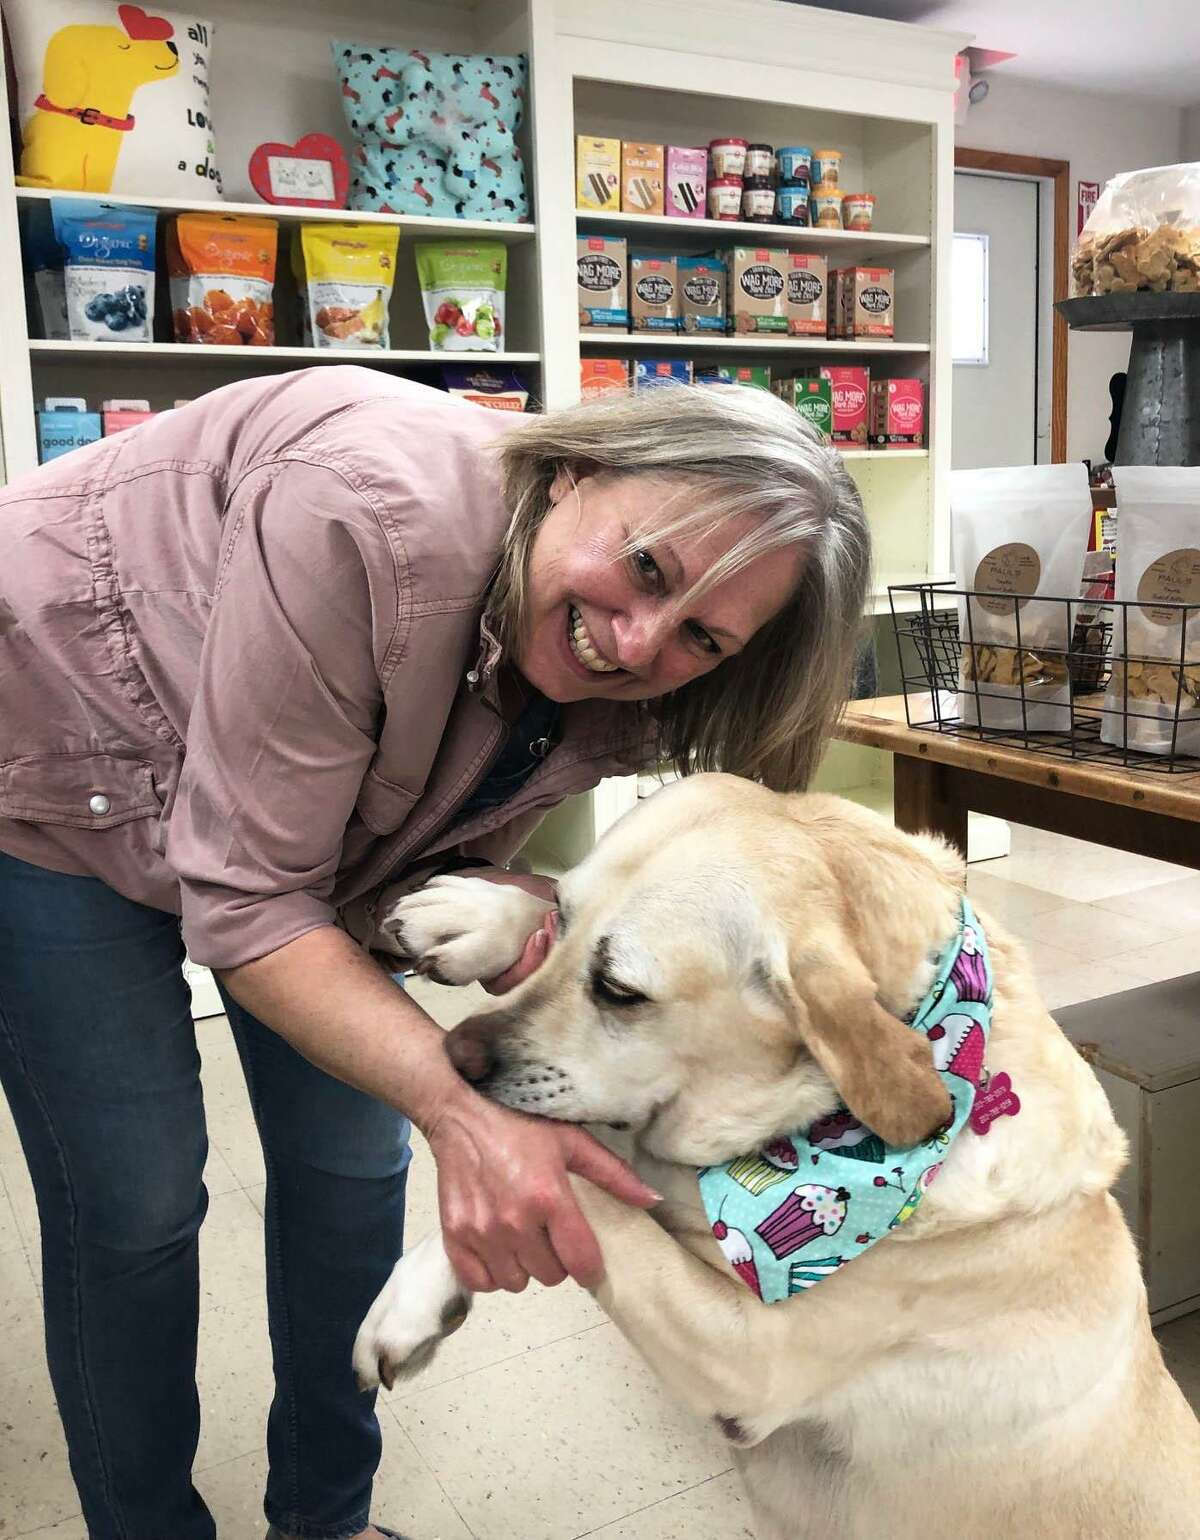 Spectrum/Debbie Bauman, owner of The Barkery Boo'tique in New Milford has moved the business from Bank Street to 92 Park Lane Road (Route 202). Bauman is shown above with her dog, Daisy, an 8-year-old Yellow Lab, who is the store's